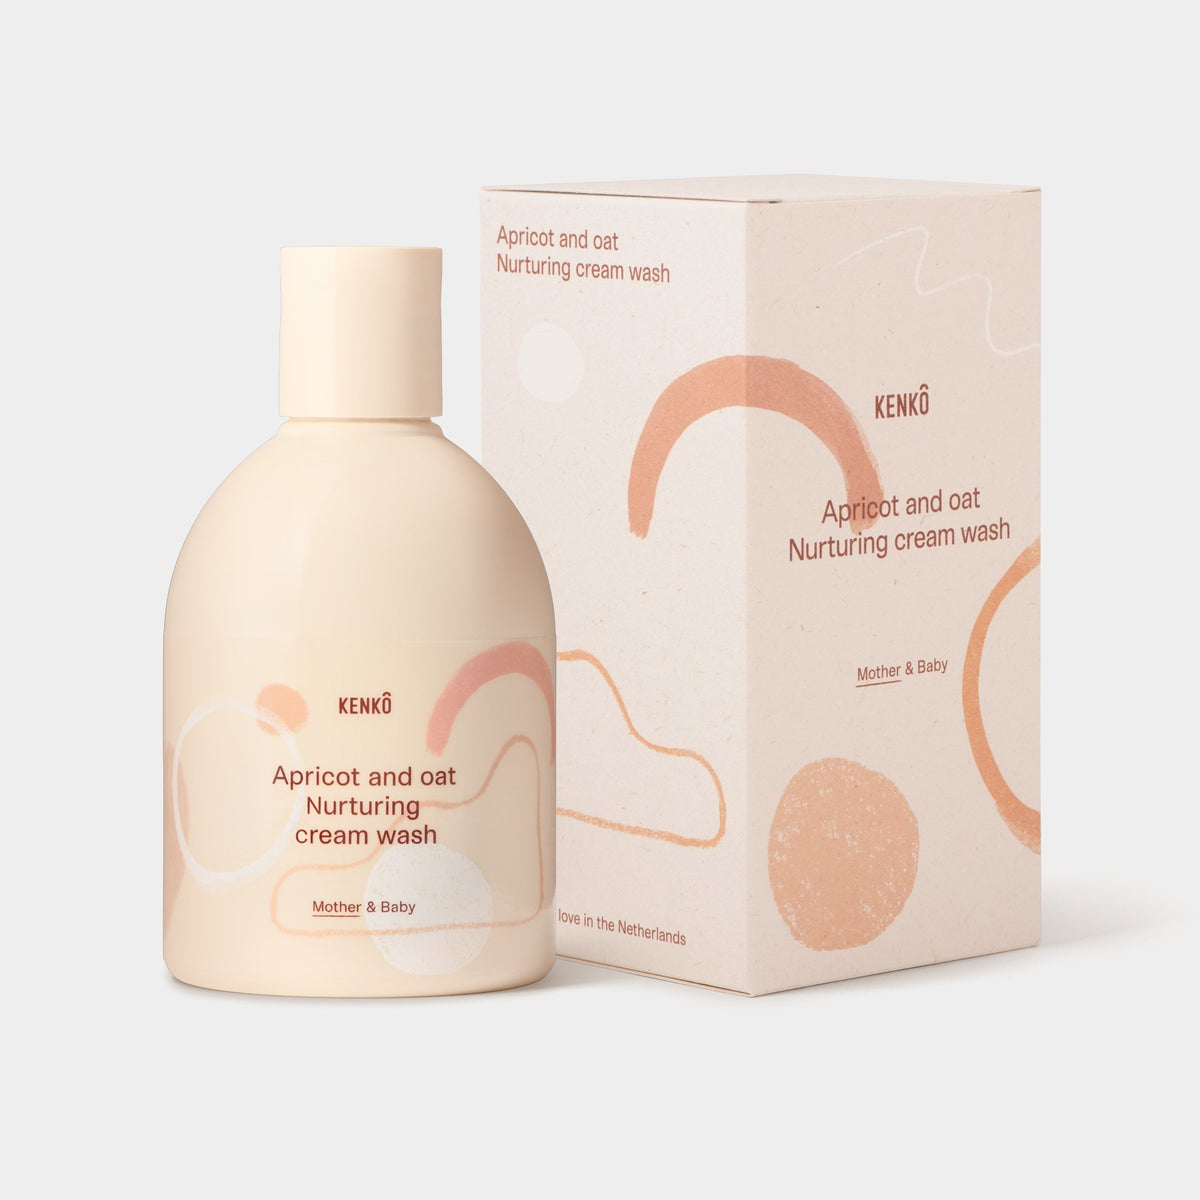 Image of Kenkô Apricot And Oat Nurturing Cream Wash Mother